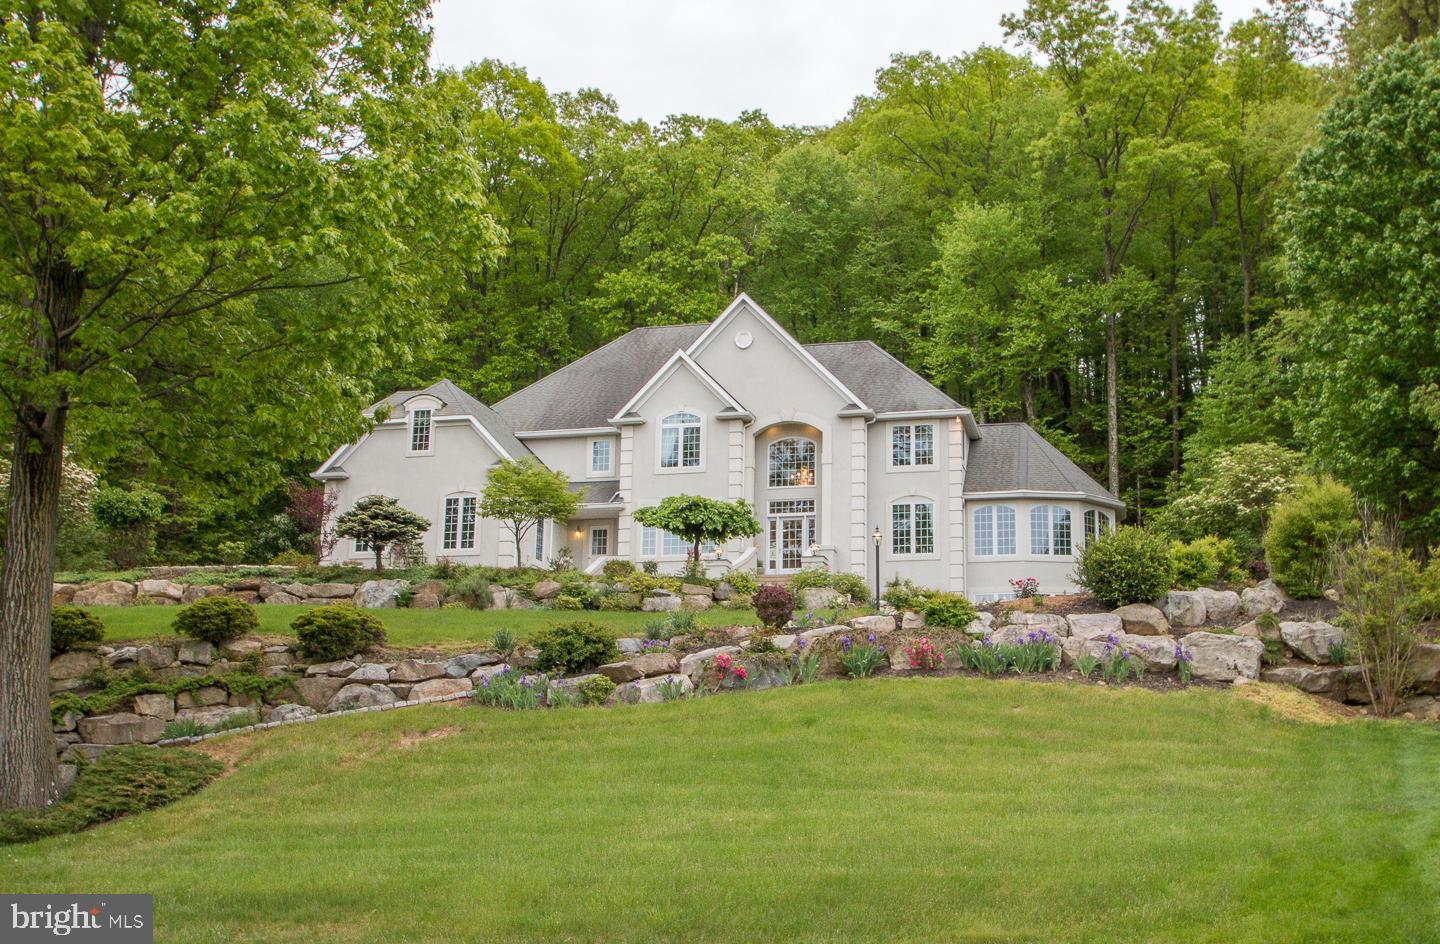 1975 AUGUSTA DRIVE, CENTER VALLEY, PA 18034